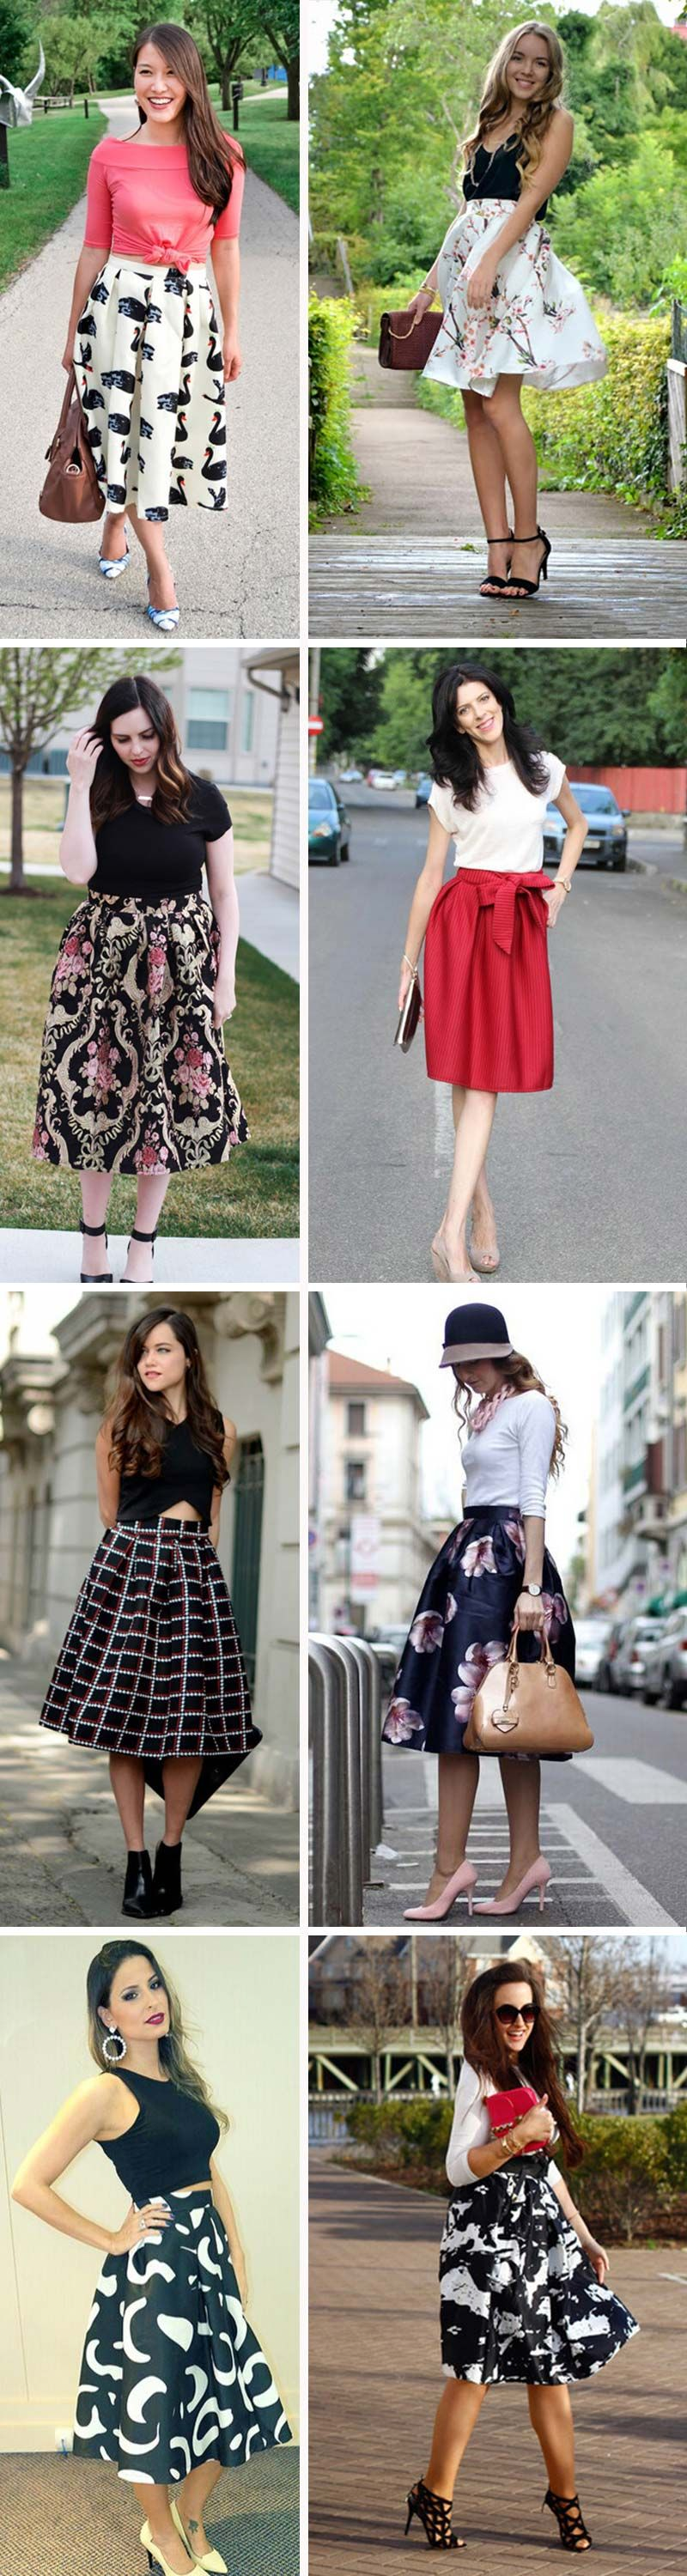 Short Women Skirts, From $9.99, Shop Now! | cute outfits ...